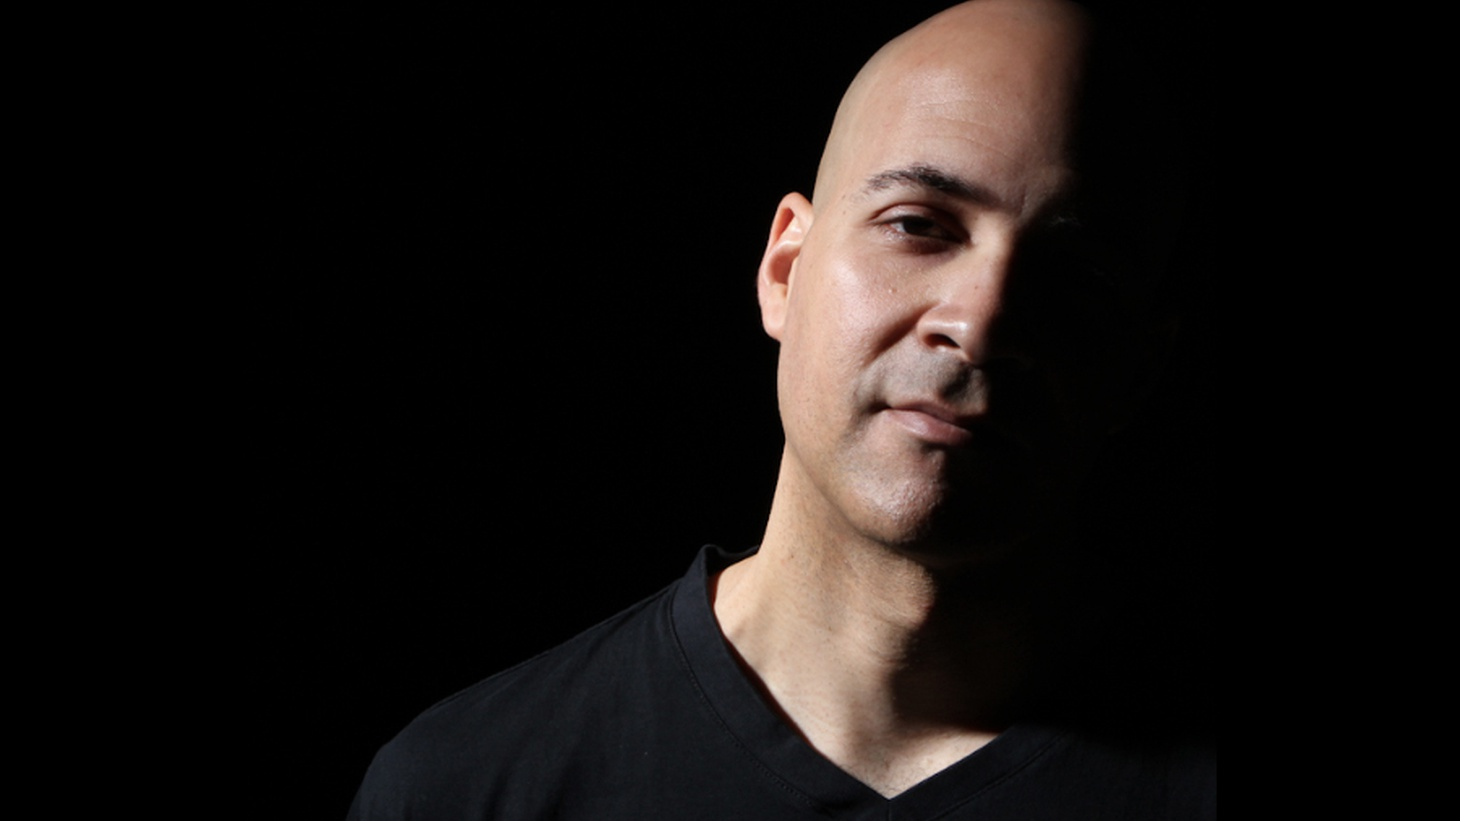 San Francisco-based Goapele (pronounced Go-Aah-pa-lay) joins Garth Trinidad. She possesses one of the most alluring and powerful voices emerging in the new soul movement and plays songs from her debut album, Even Closer.